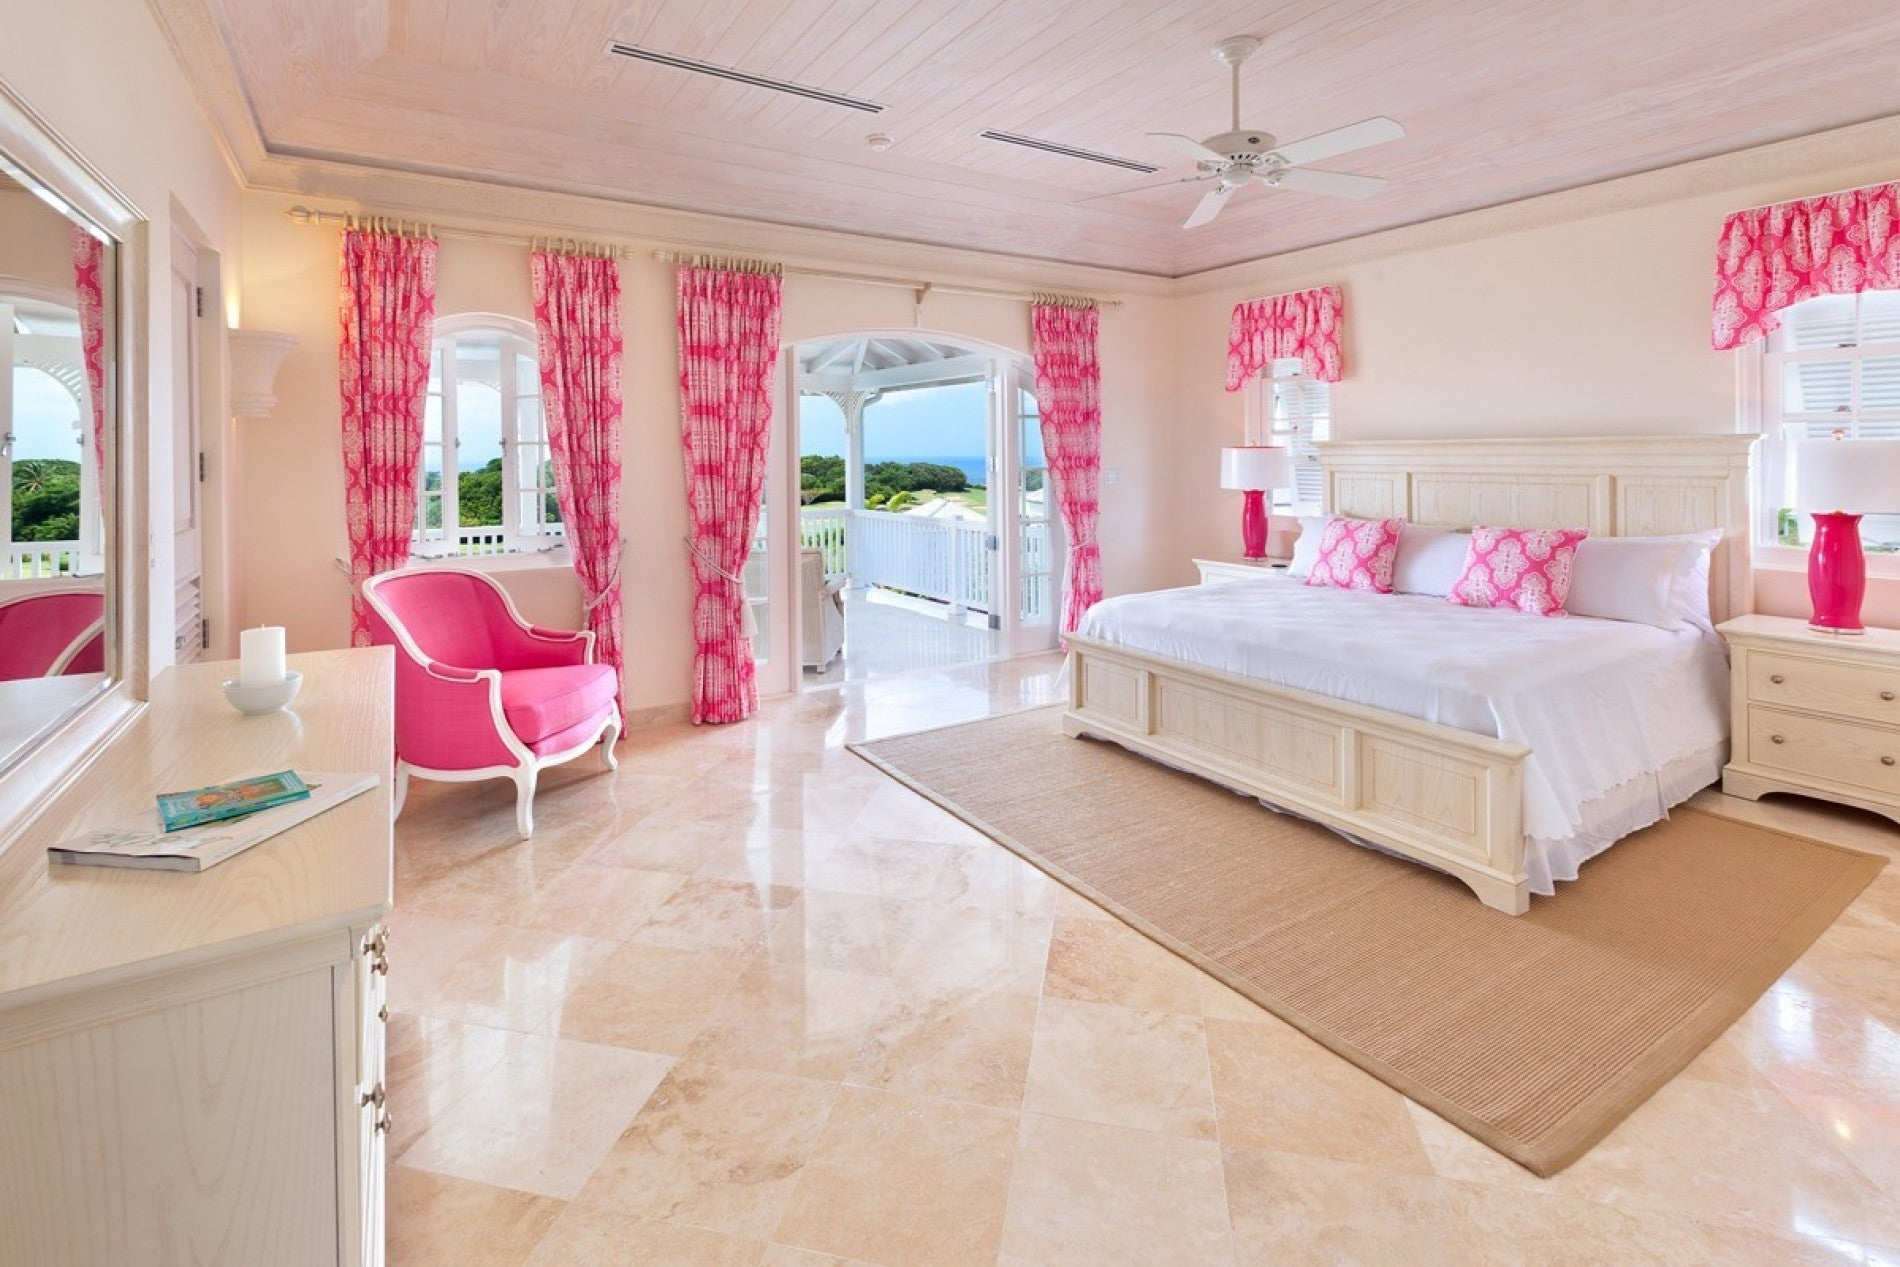 traditional bedroom with pink curtains and decor